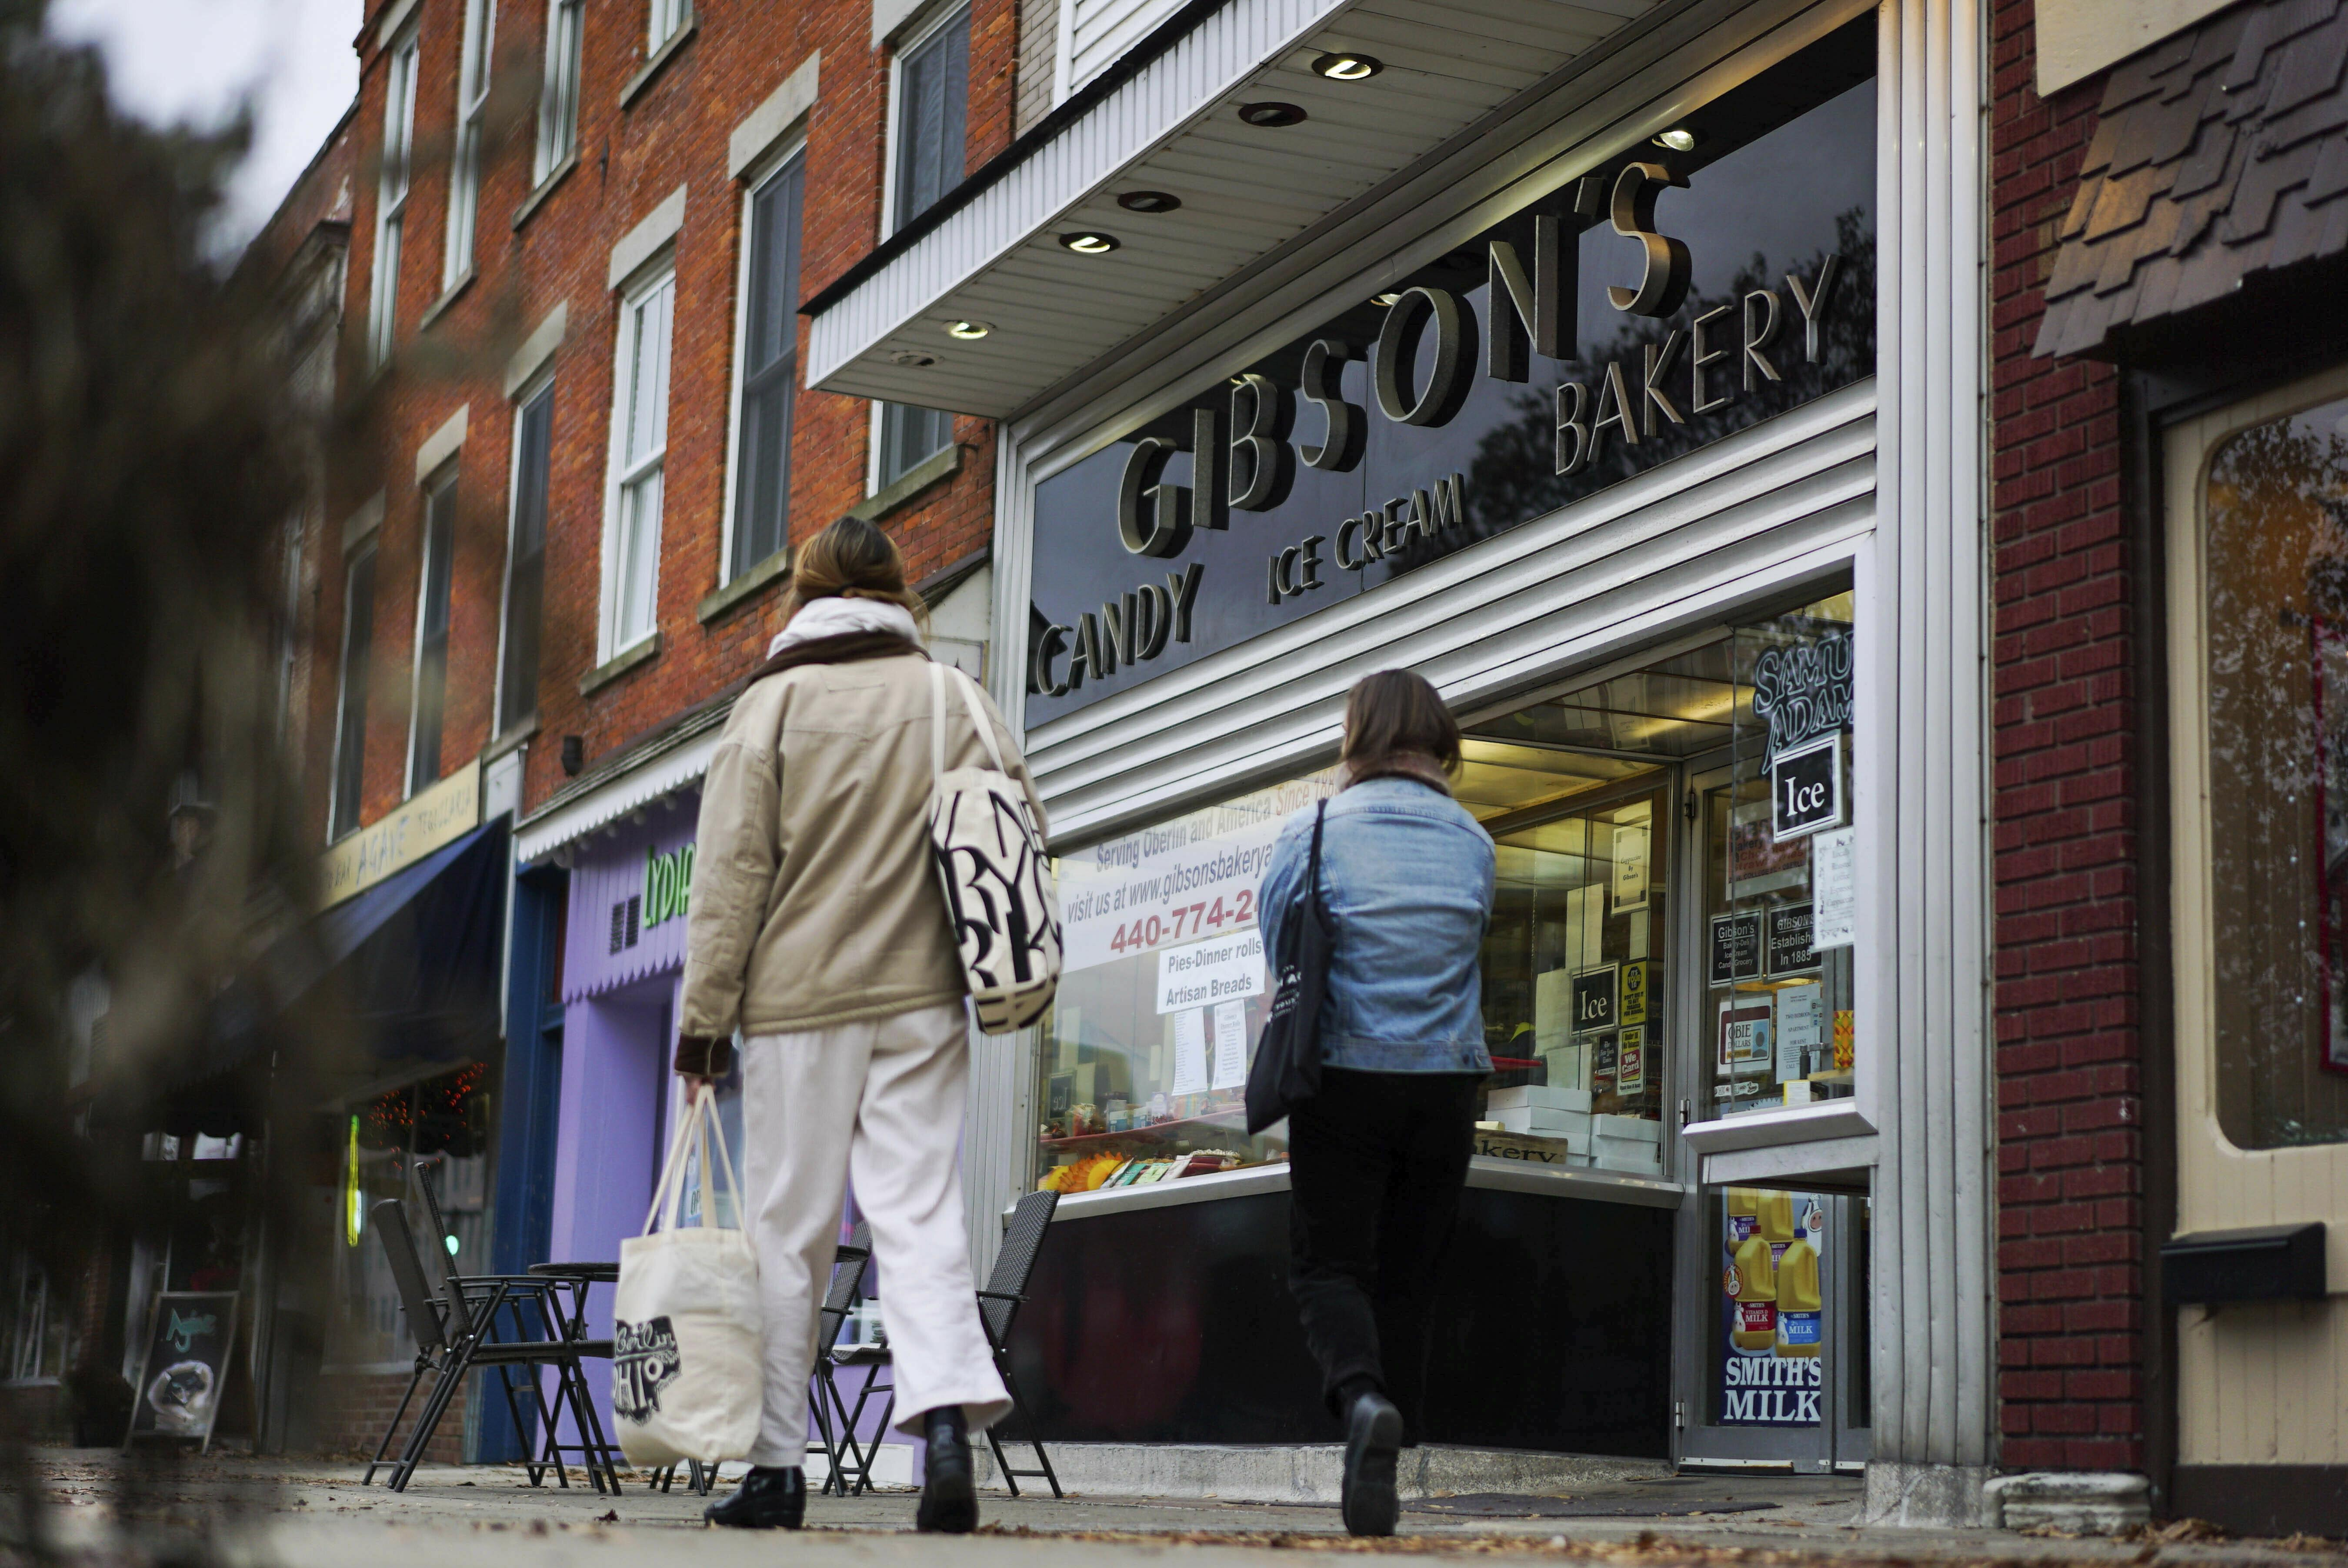 Oberlin to appeal $31.5 million jury award over protests against Gibson's Bakery